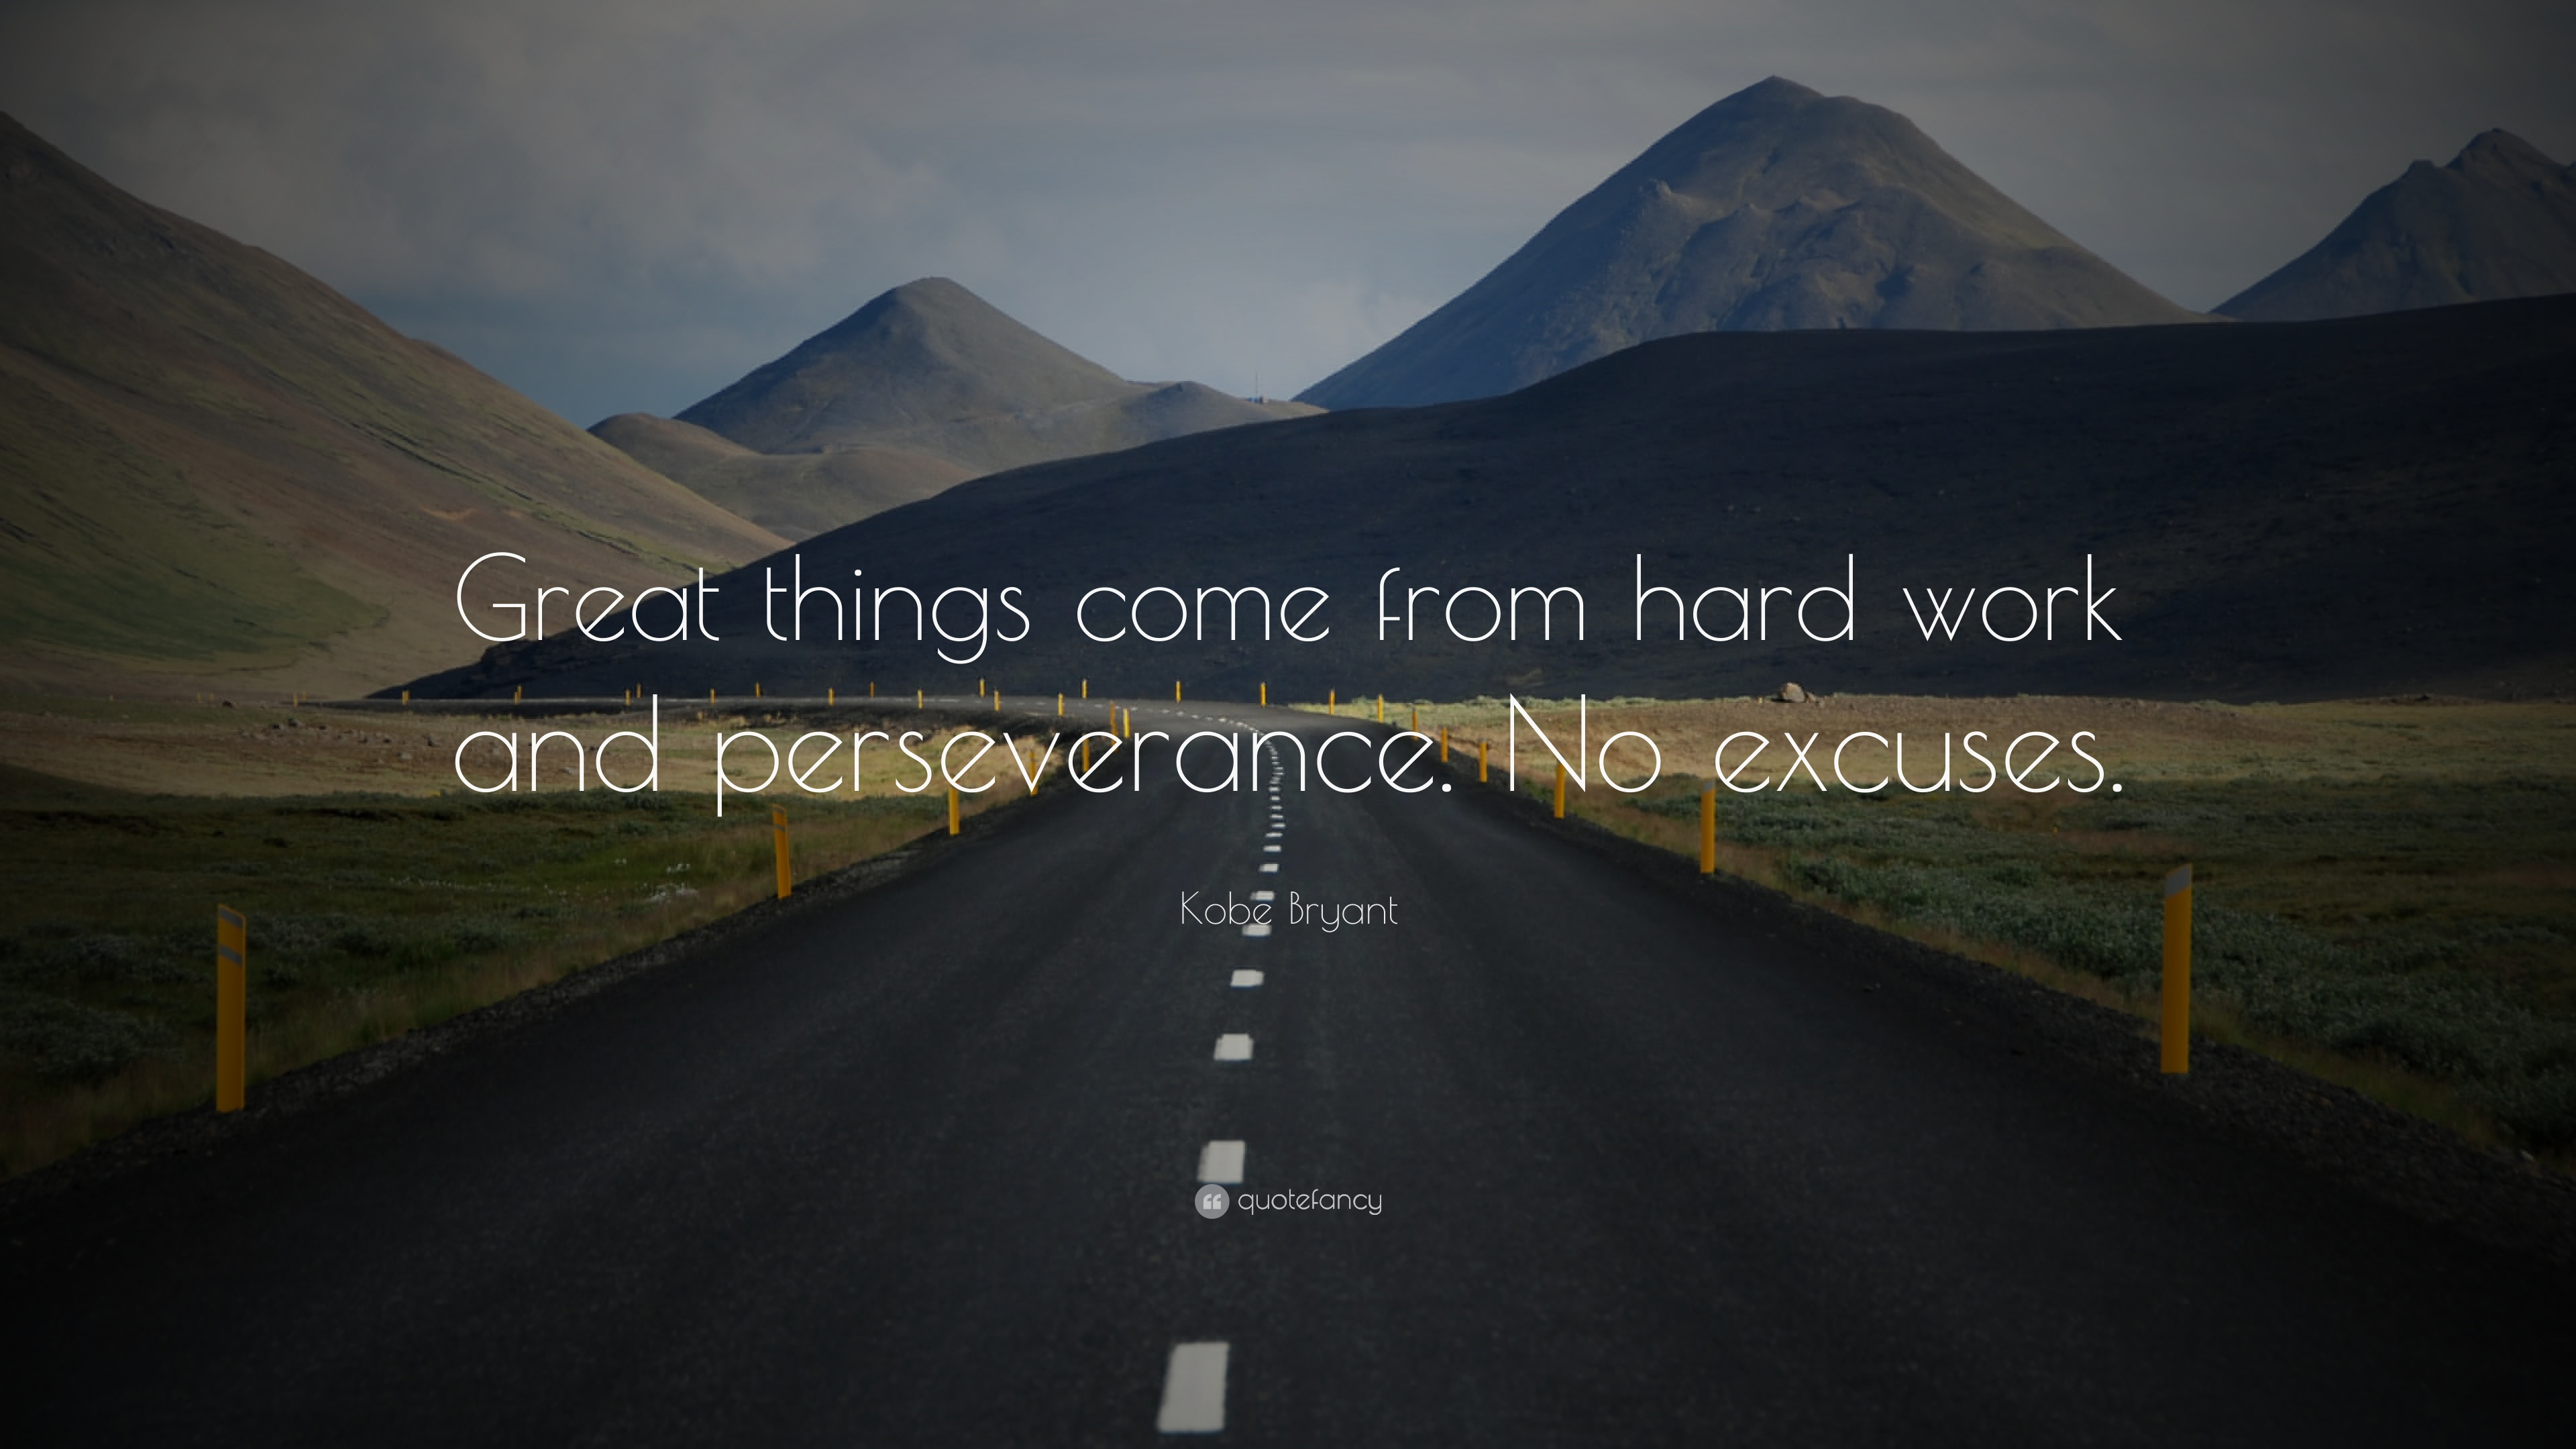 kobe bryant quote   u201cgreat things come from hard work and